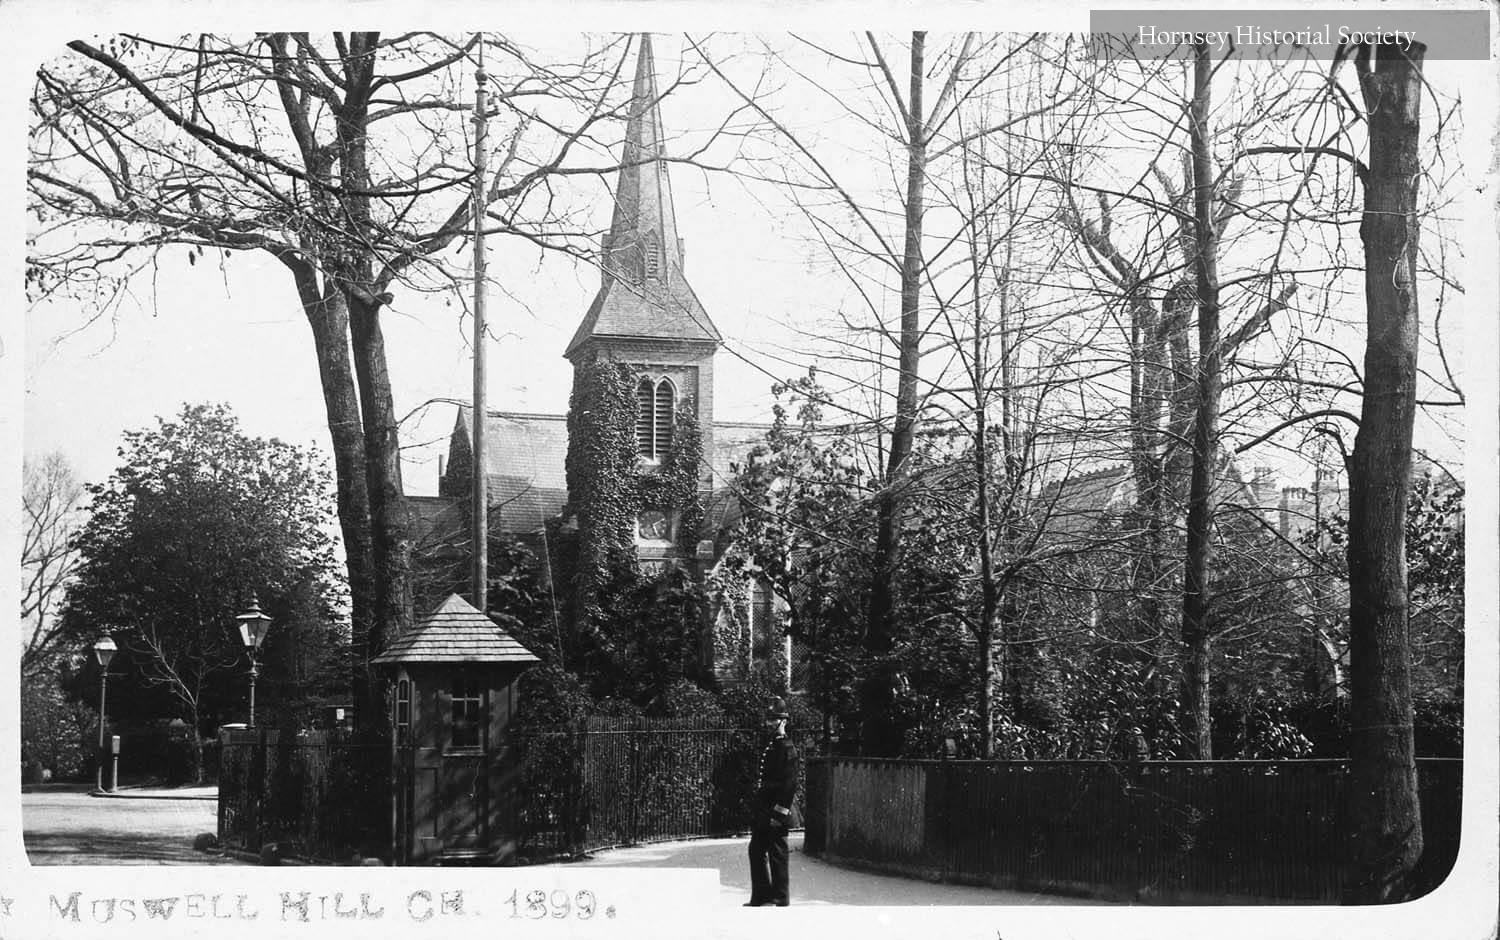 First St James Church Muswell Hill in 1899